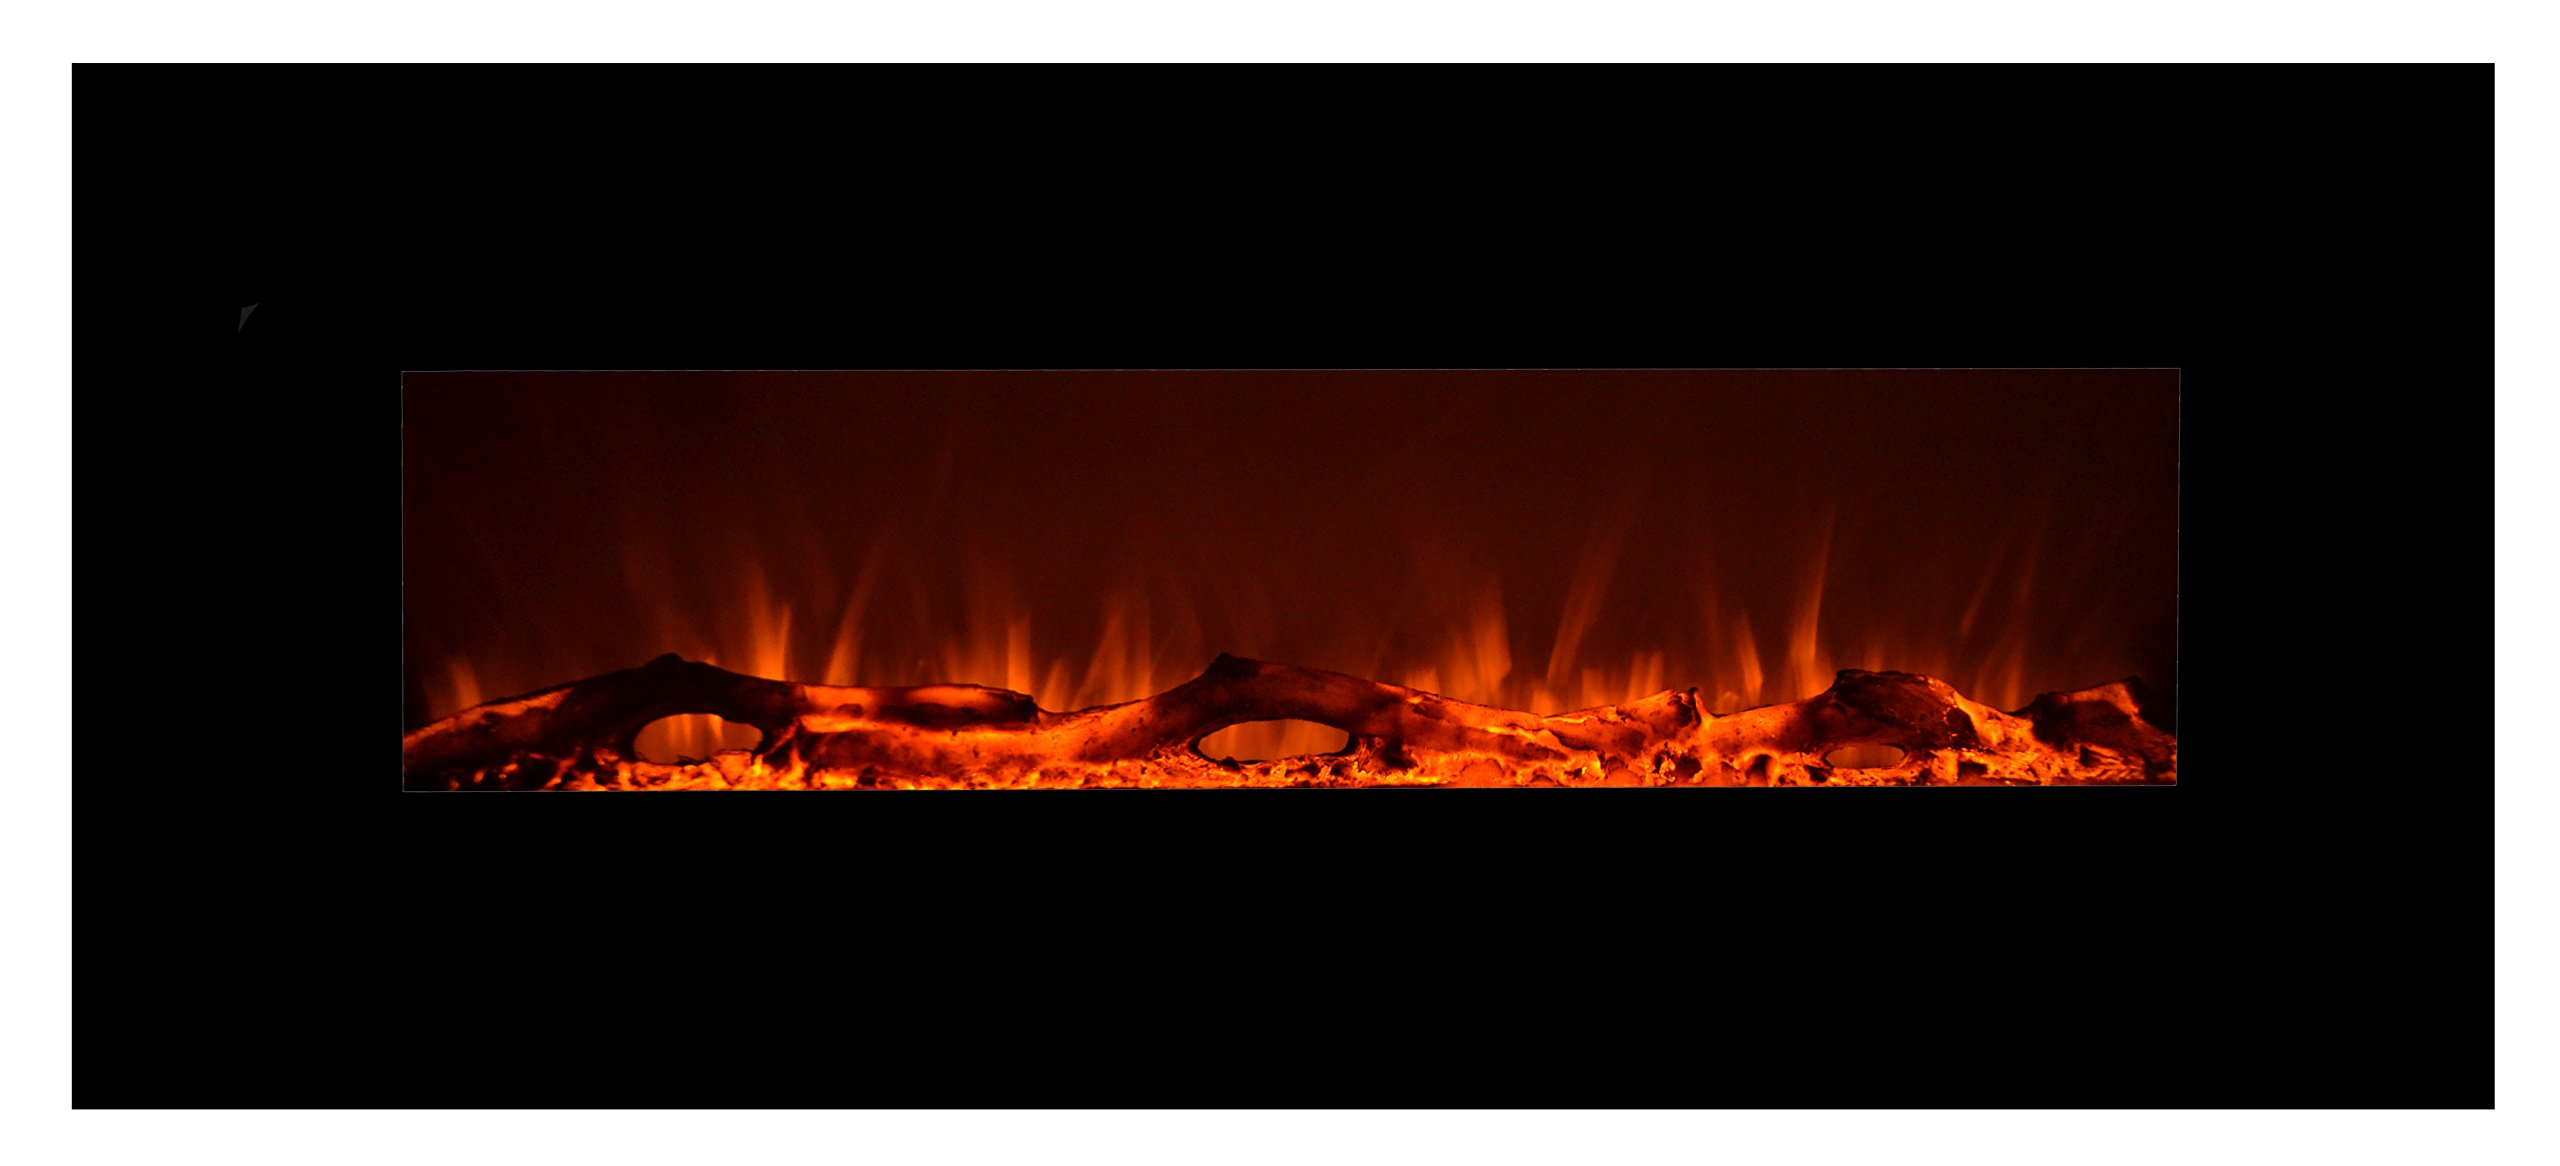 Touchstone 80001 - Onyx Electric Fireplace - (Black) - 50 Inch Wide - On-Wall Hanging - Log & Crystal Included - 5 Flame Settings - Realistic Flame - 1500/750W Timer & Remote by Touchstone